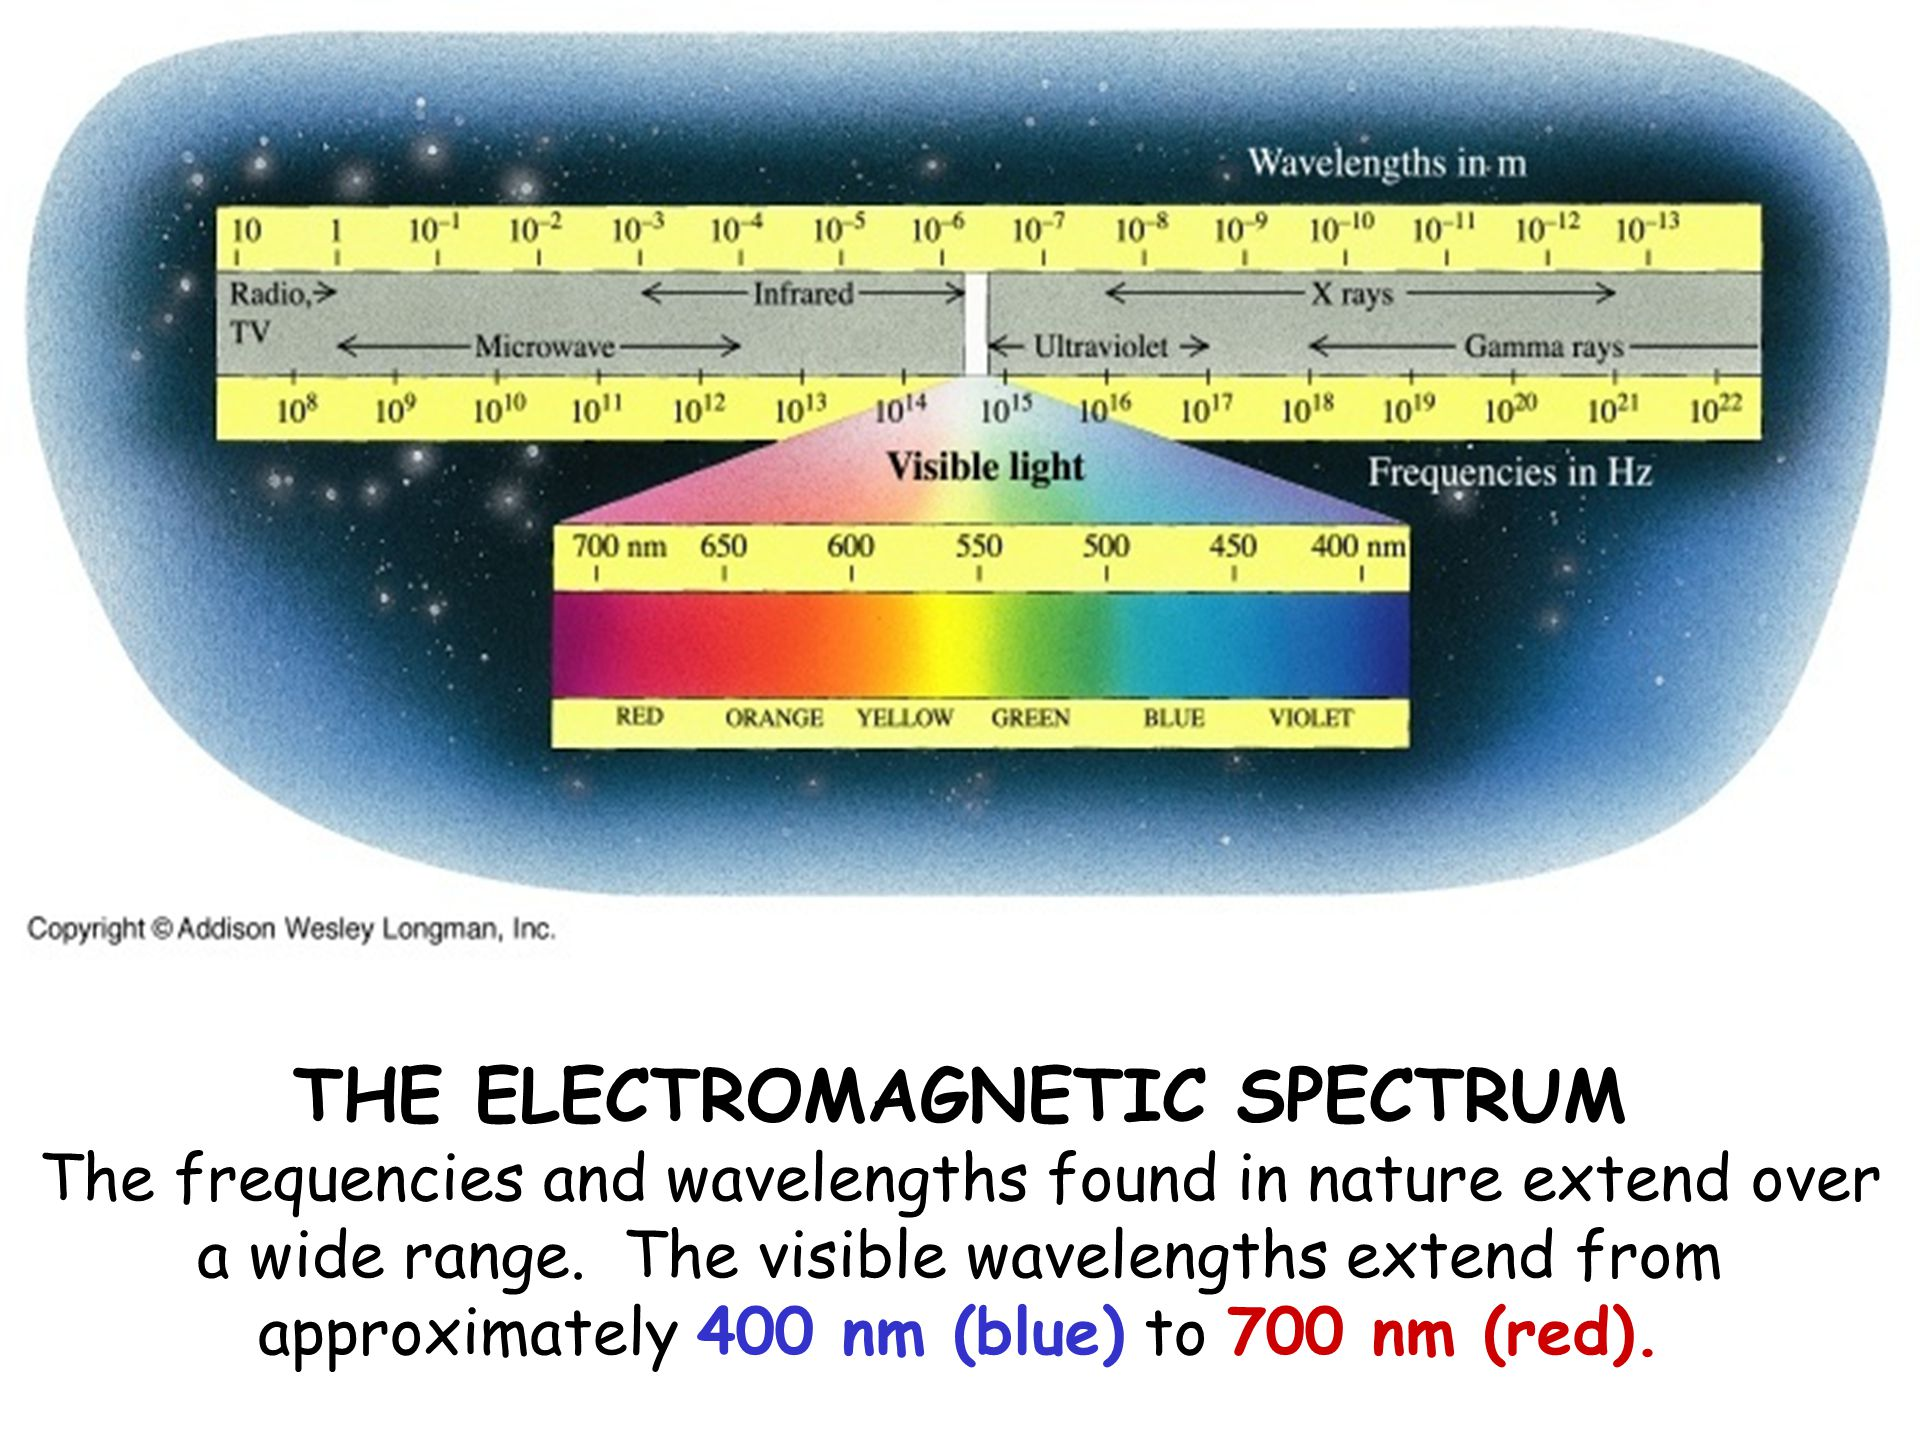 THE ELECTROMAGNETIC SPECTRUM The frequencies and wavelengths found in nature extend over a wide range.